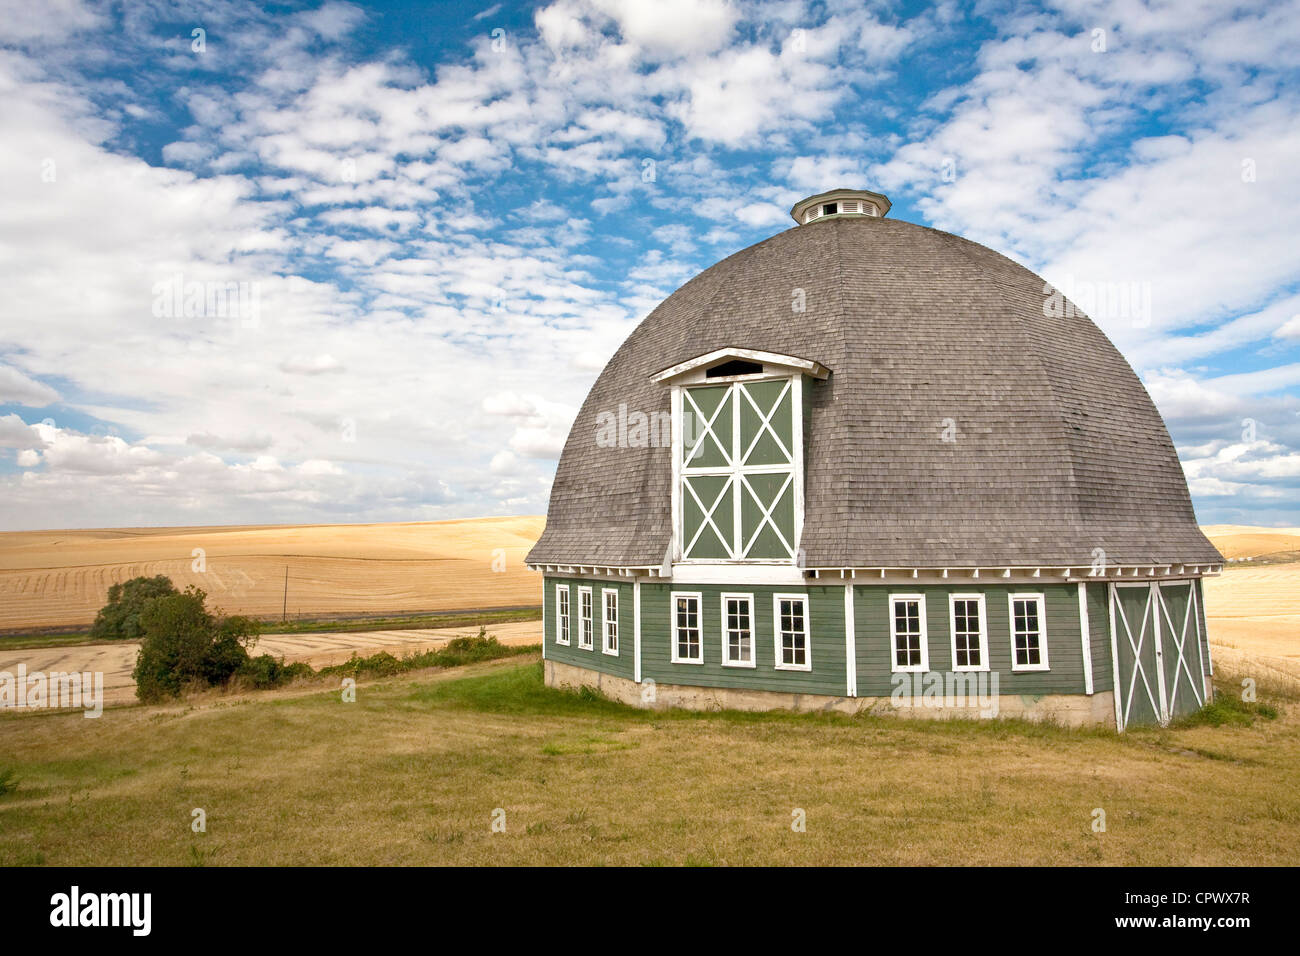 A scenic view of a round barn with a blue sky in the background. Stock Photo